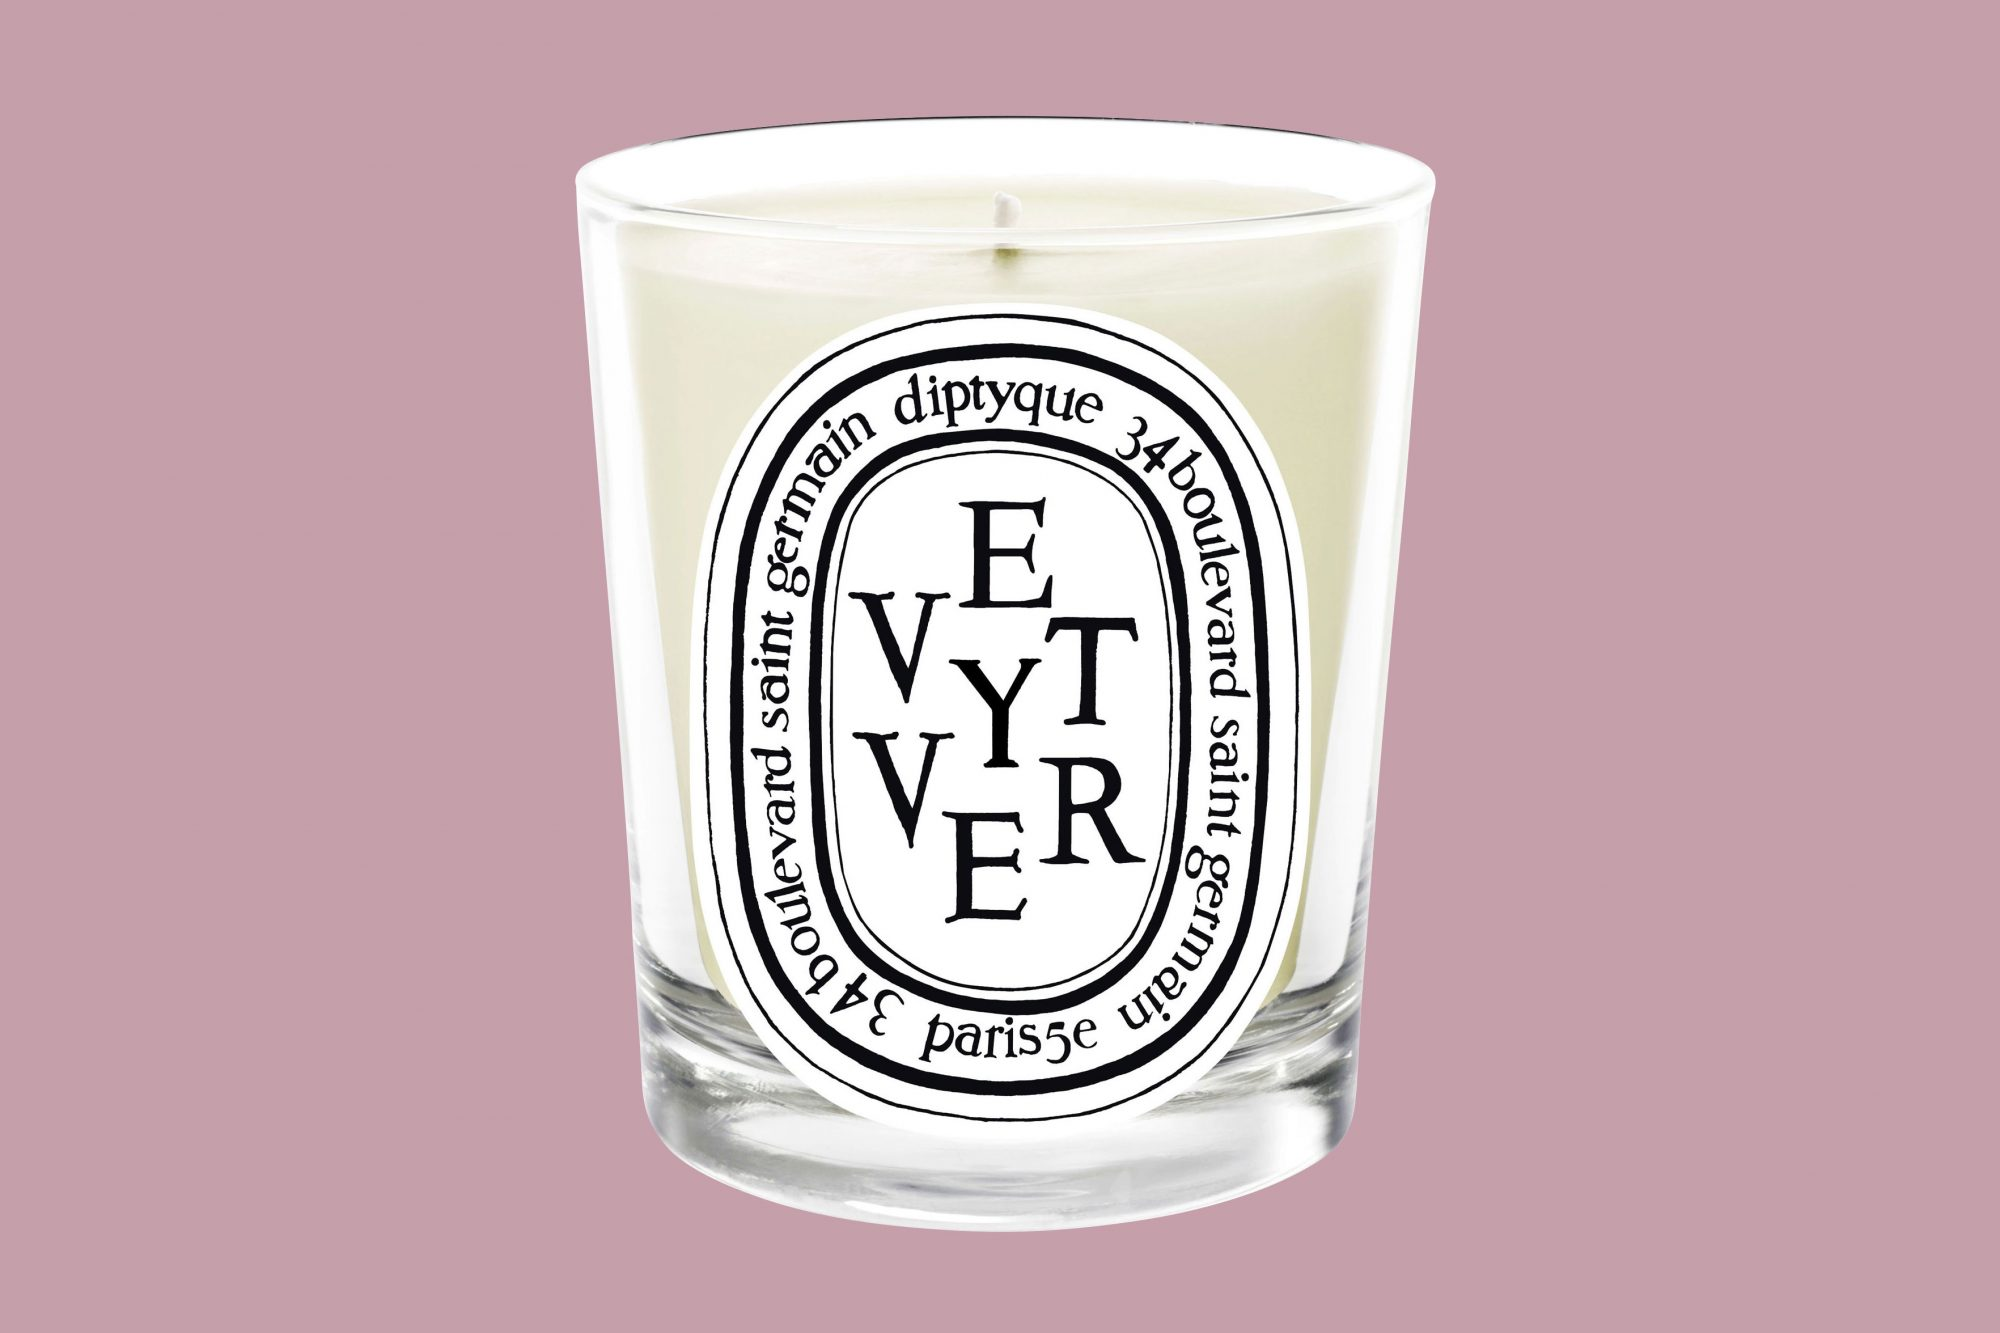 Diptyque Scented Candle in Vetyver